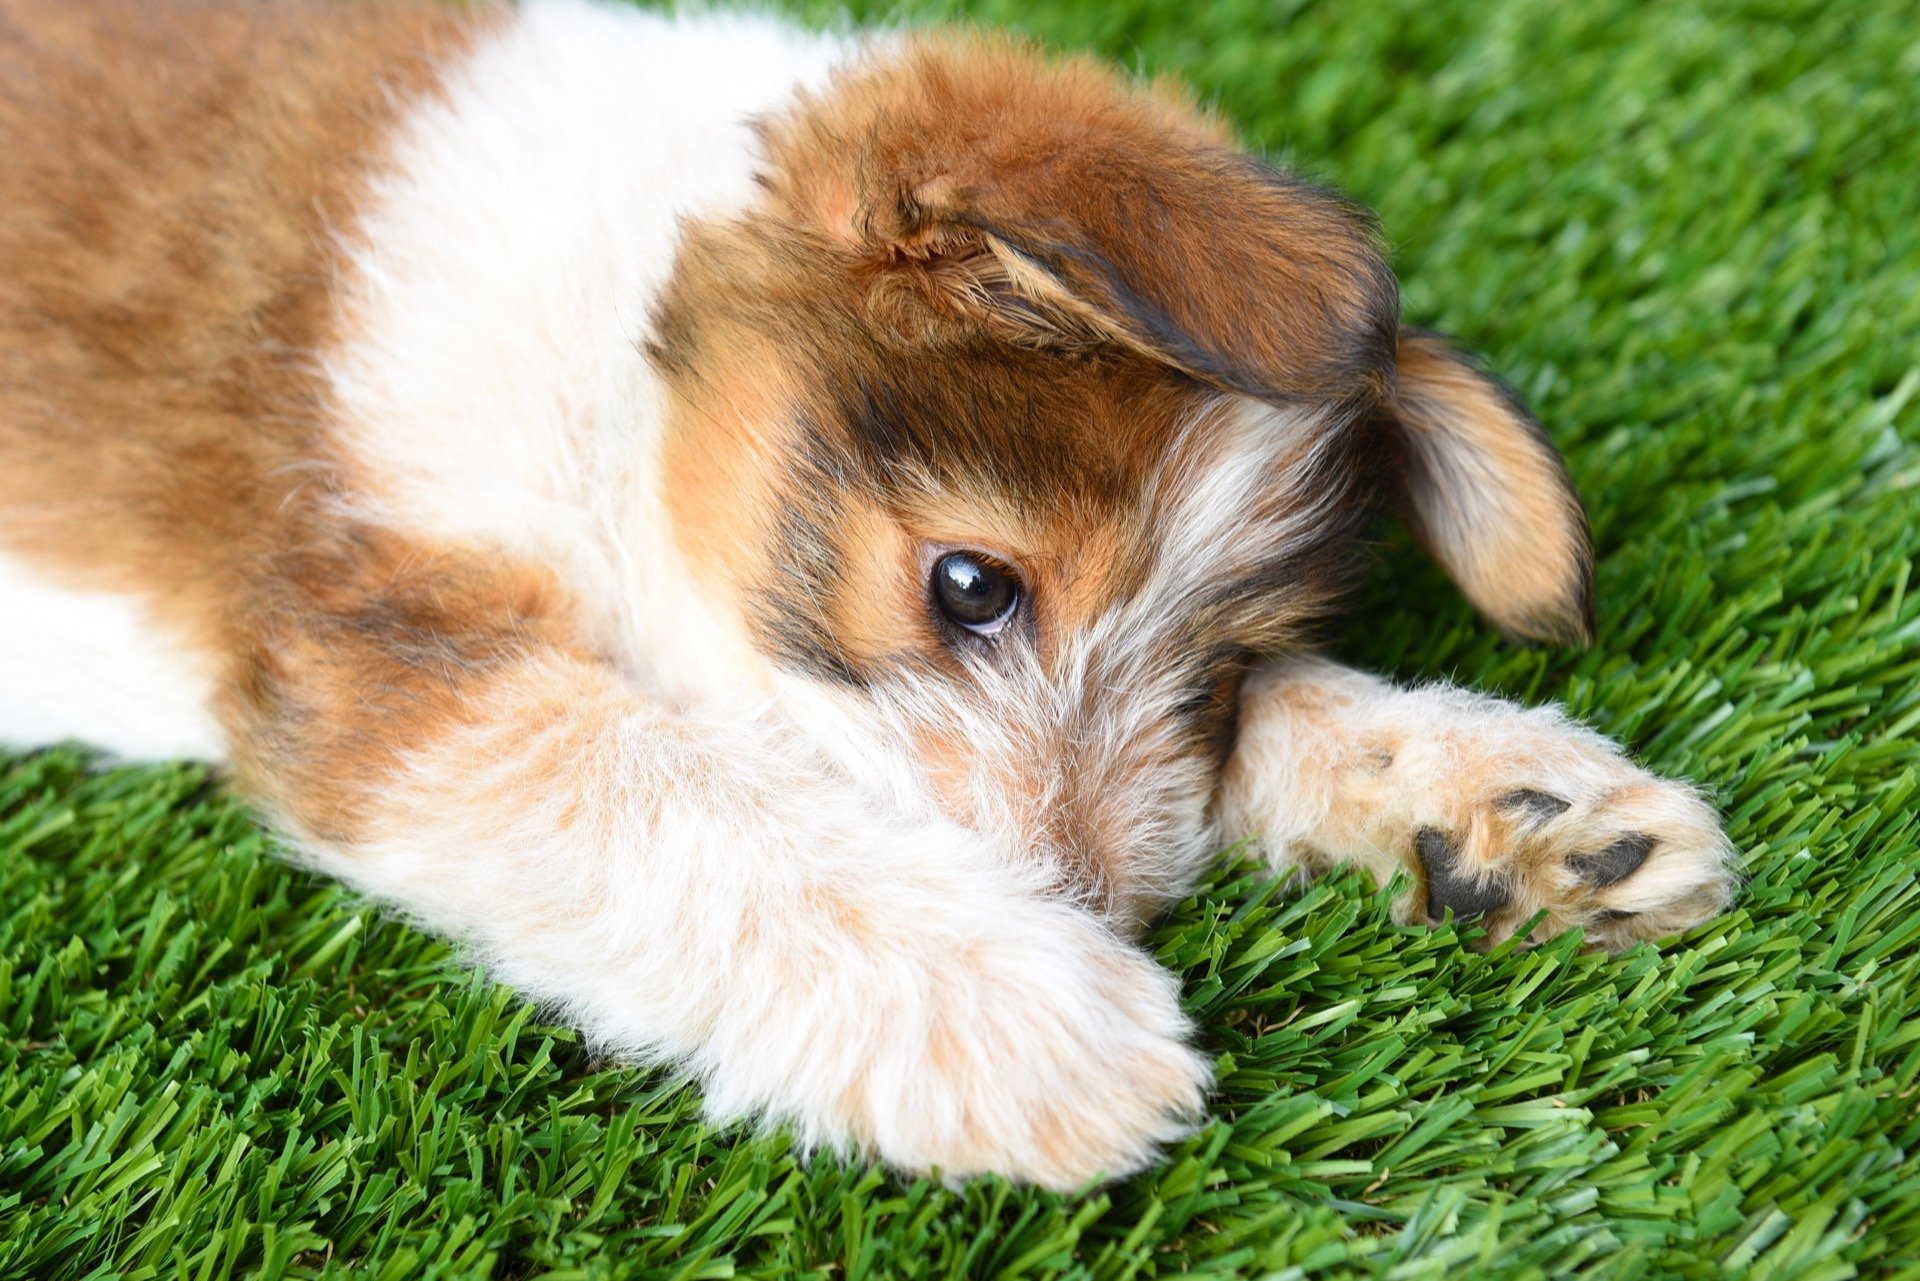 Puppy laying on artificial grass